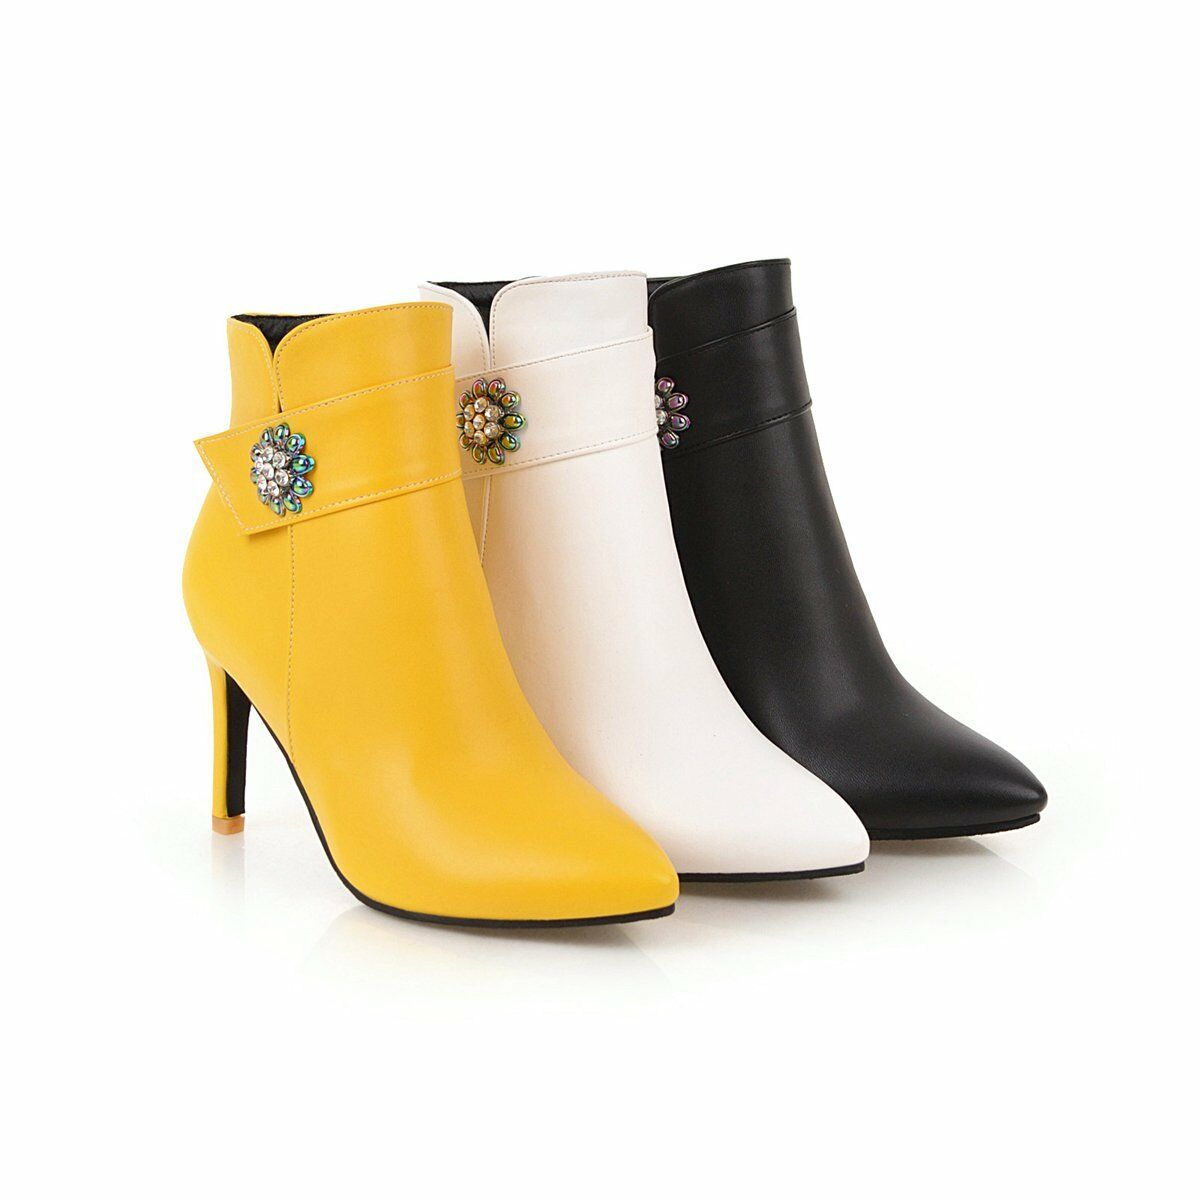 Womens High Heel Pointed shoes Zip-Up Synthetic Leather Ankle Boots US Size 214